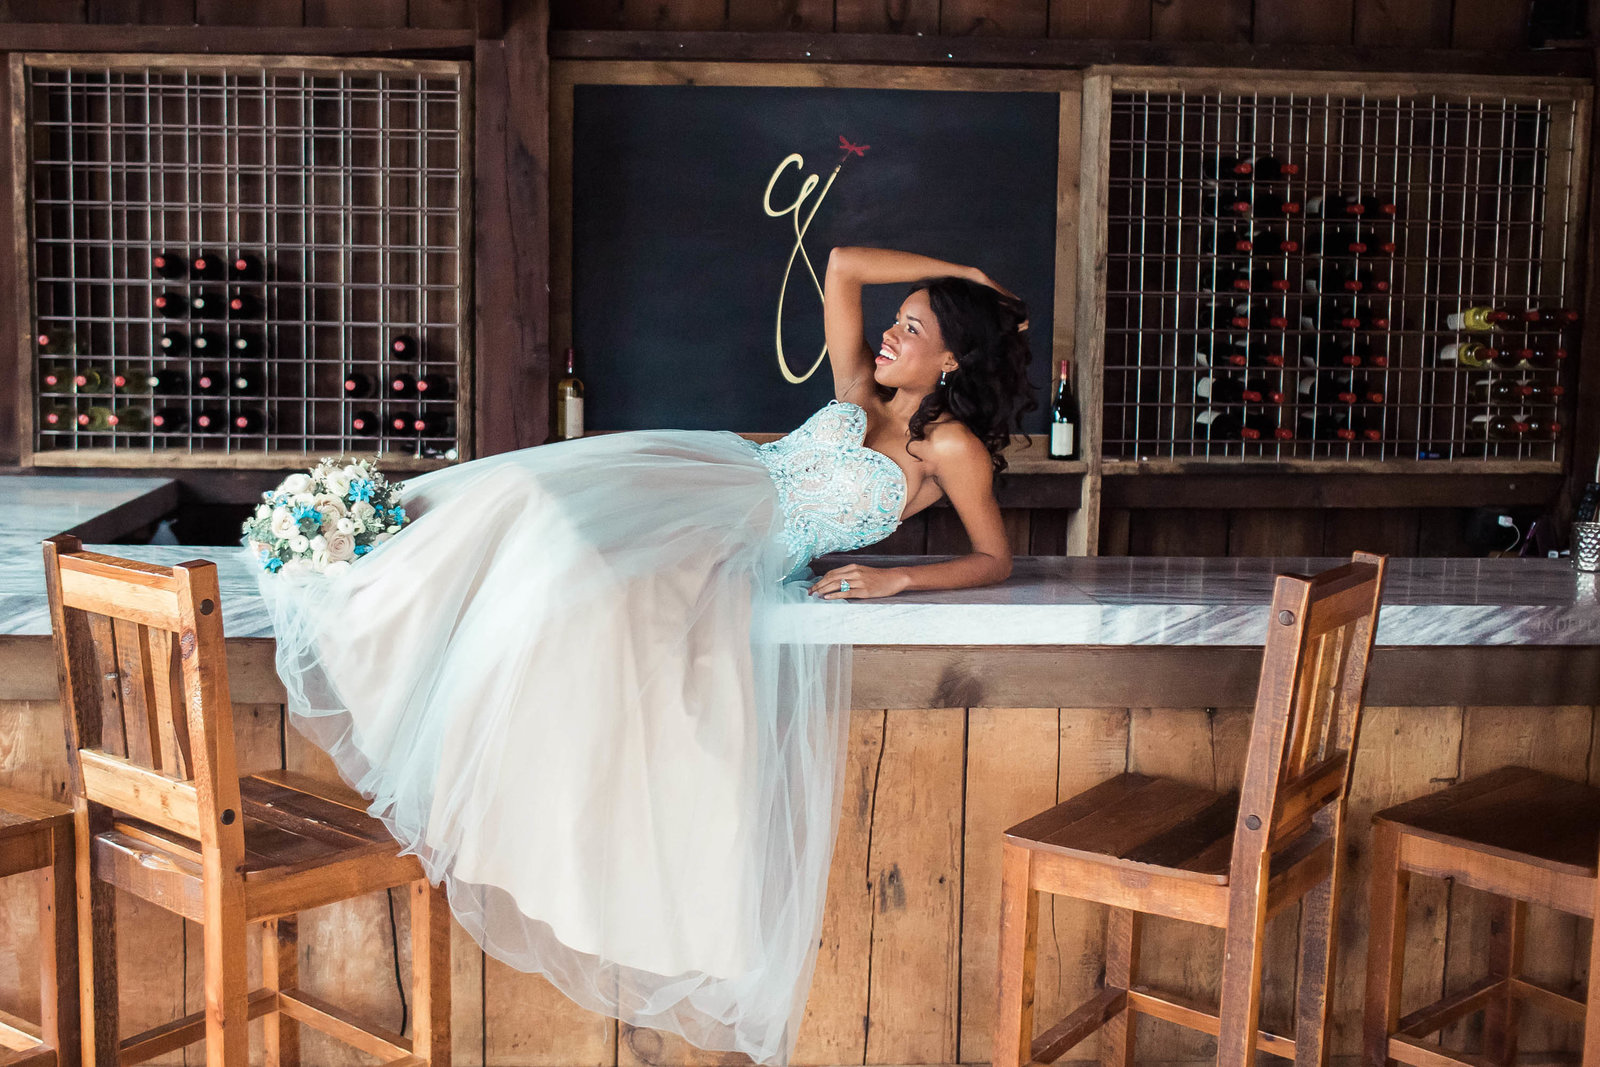 terani-mint-sweetwater-farm-winery-philadelphia-fashion-delaware-main-line-today-magazine-bridal-editorial-photography-kate-timbers238